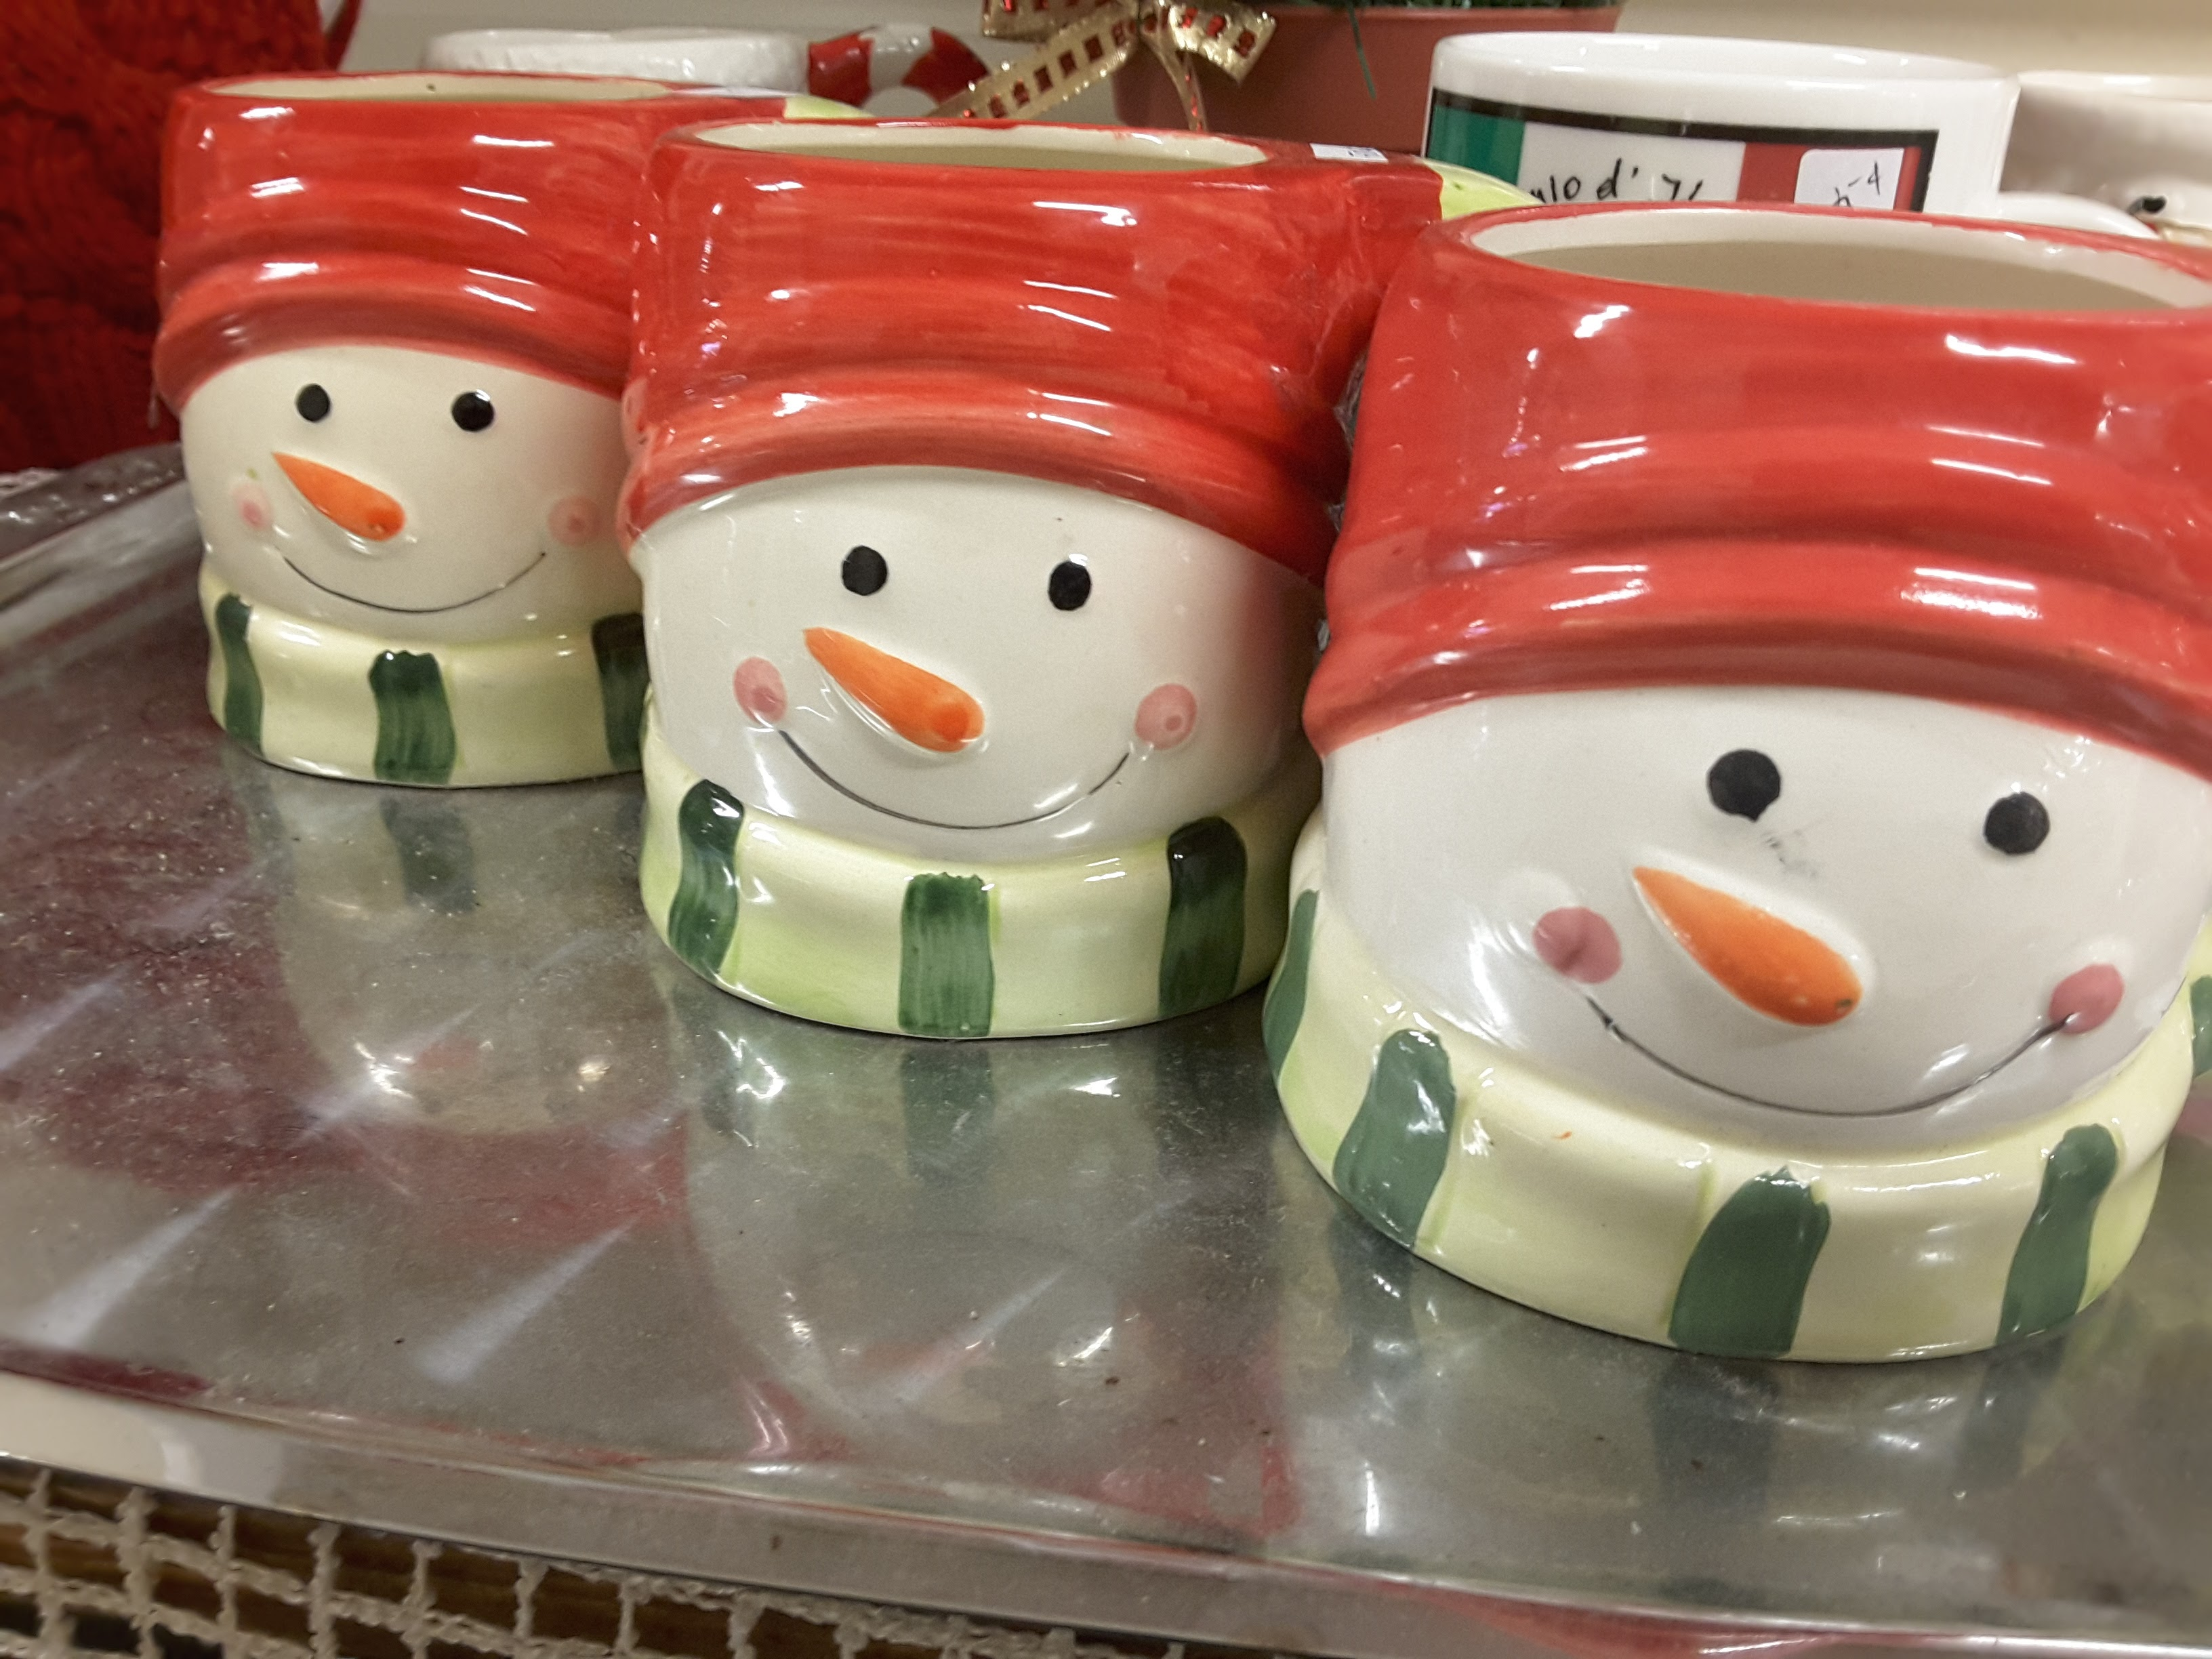 Holiday Decor at Community Services Thrift Store - Gibsons, BC